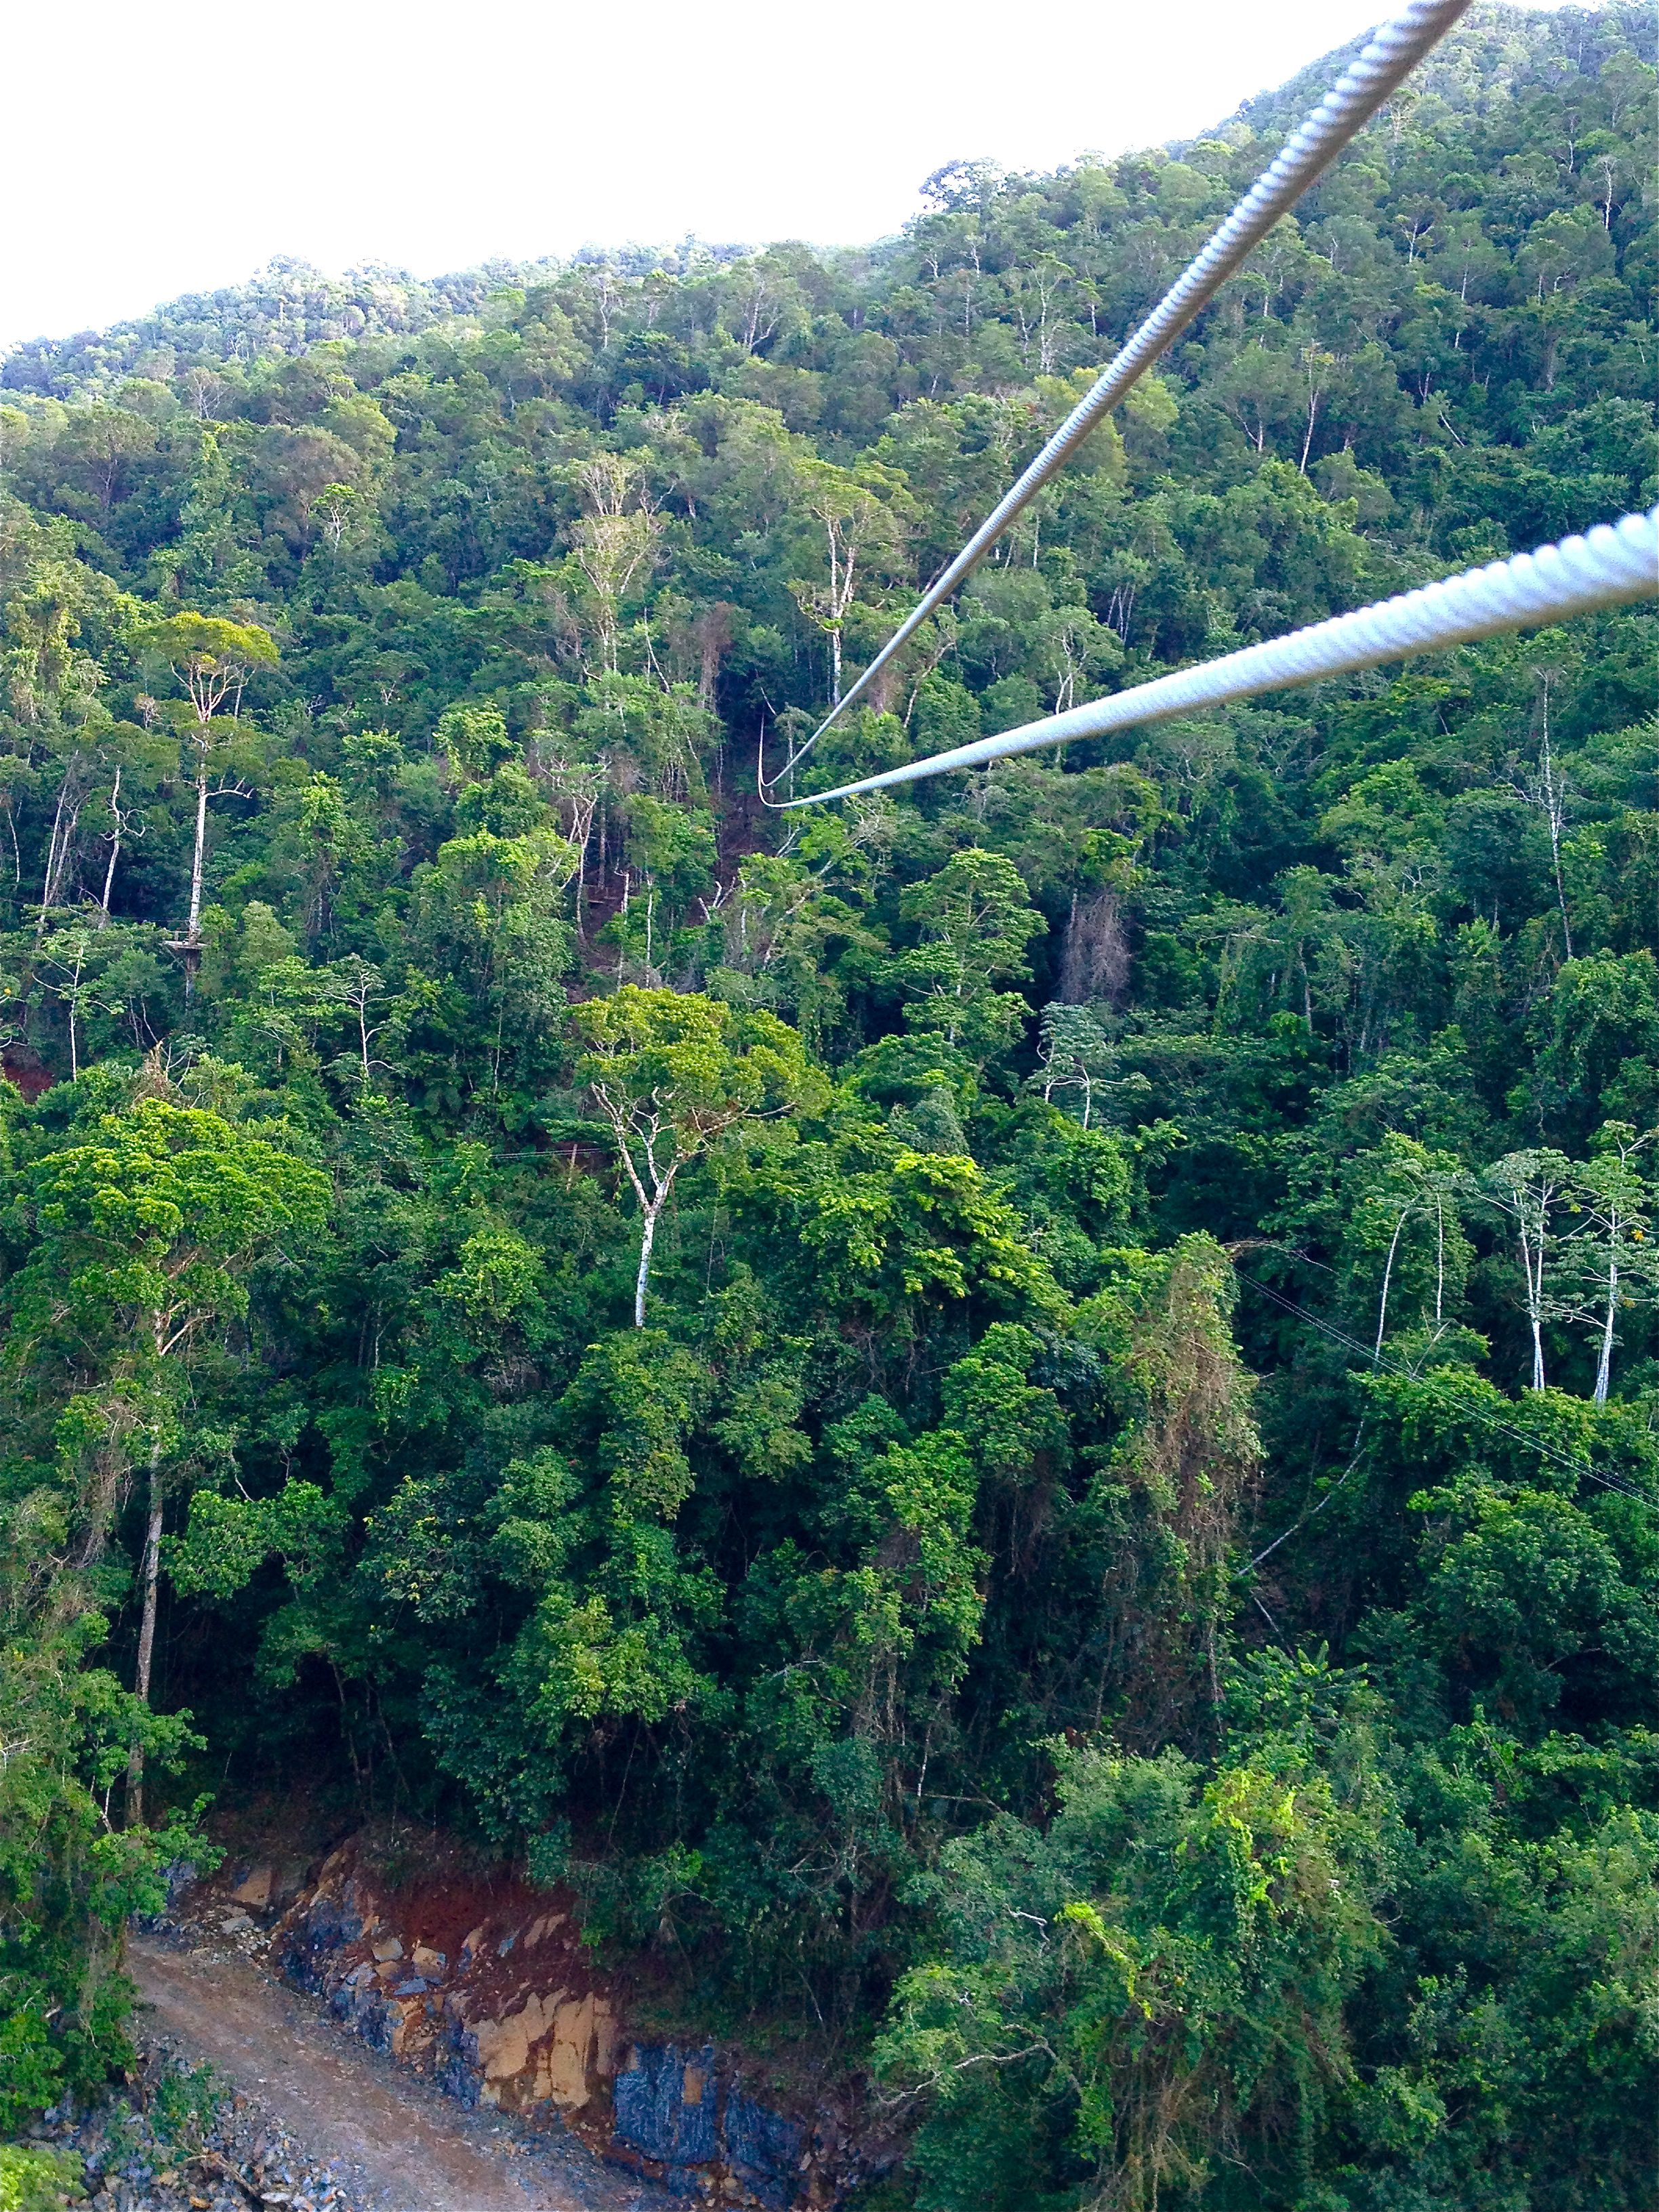 Jungle Zip Line